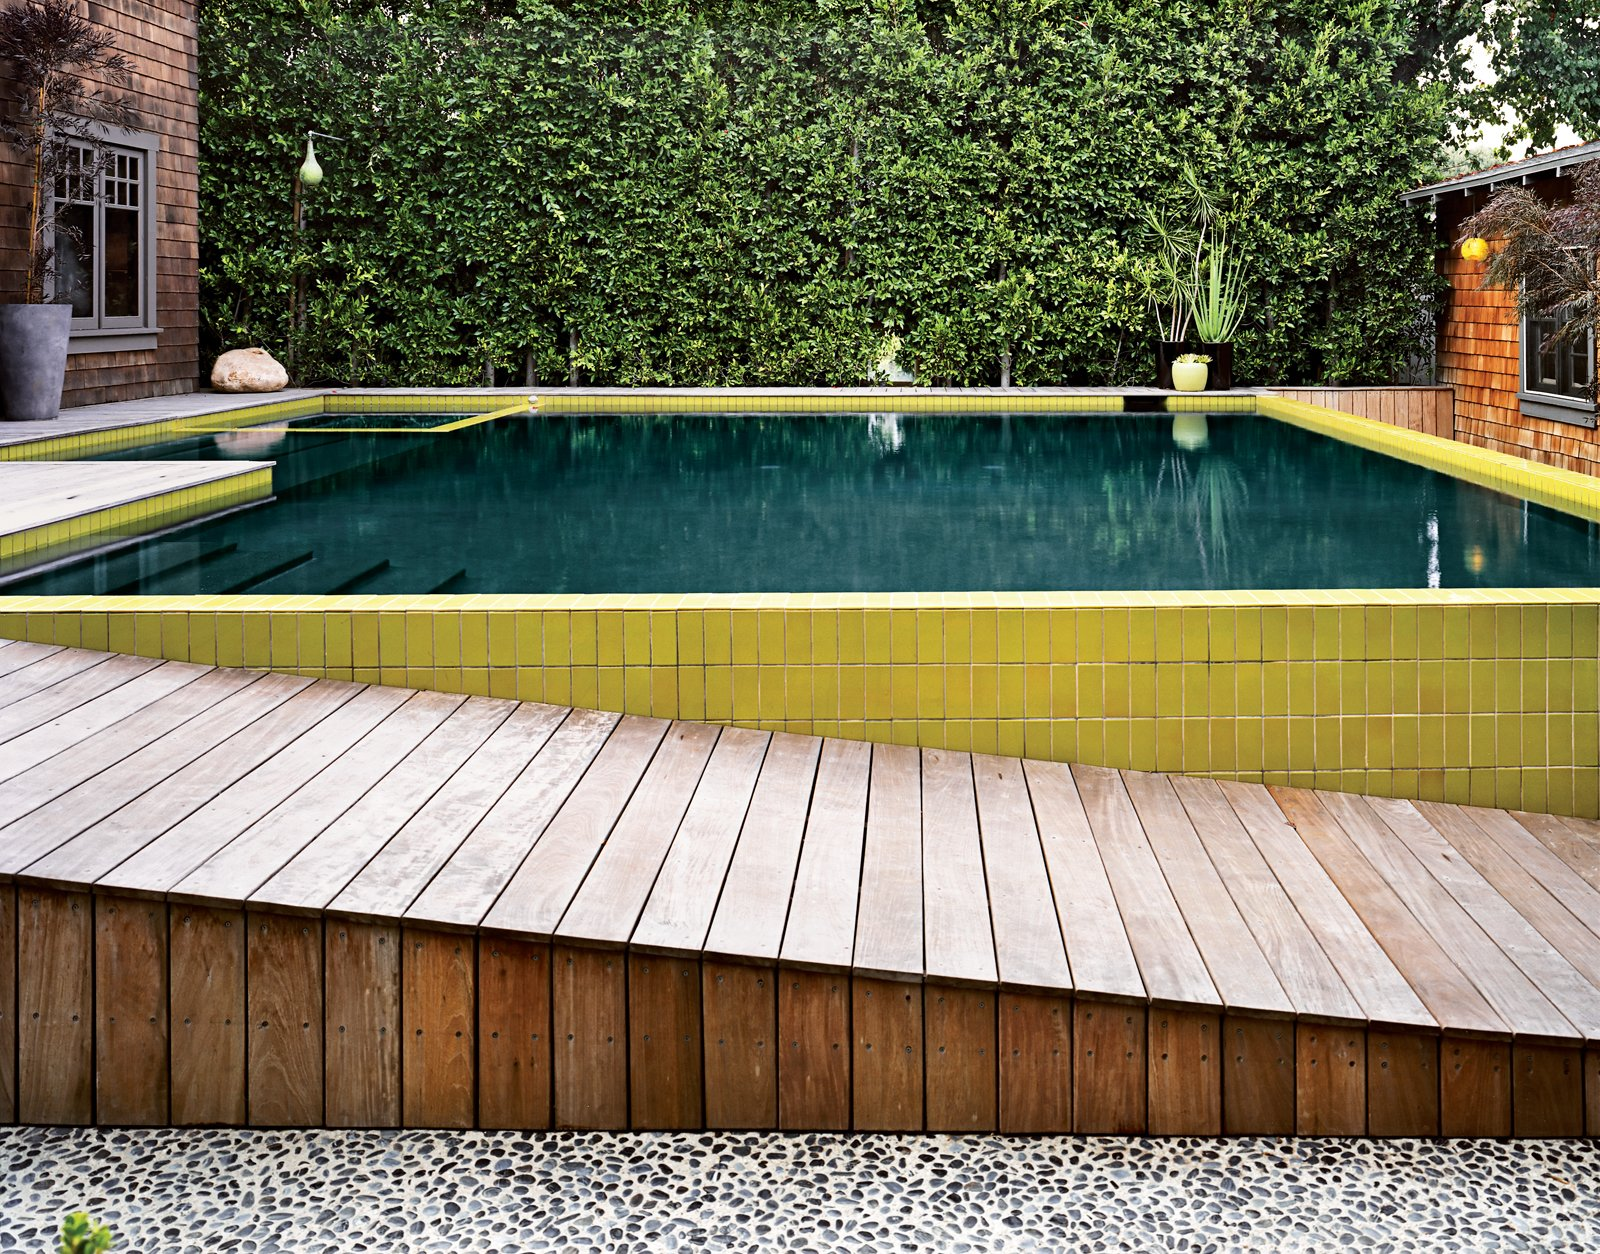 #pooldesign #pool #layered #exterior #outside #modern #minimal #color #tile #wood #stone #elevated #aesthetic #2008 #SantaMonica #California    Best Photos from outdoors